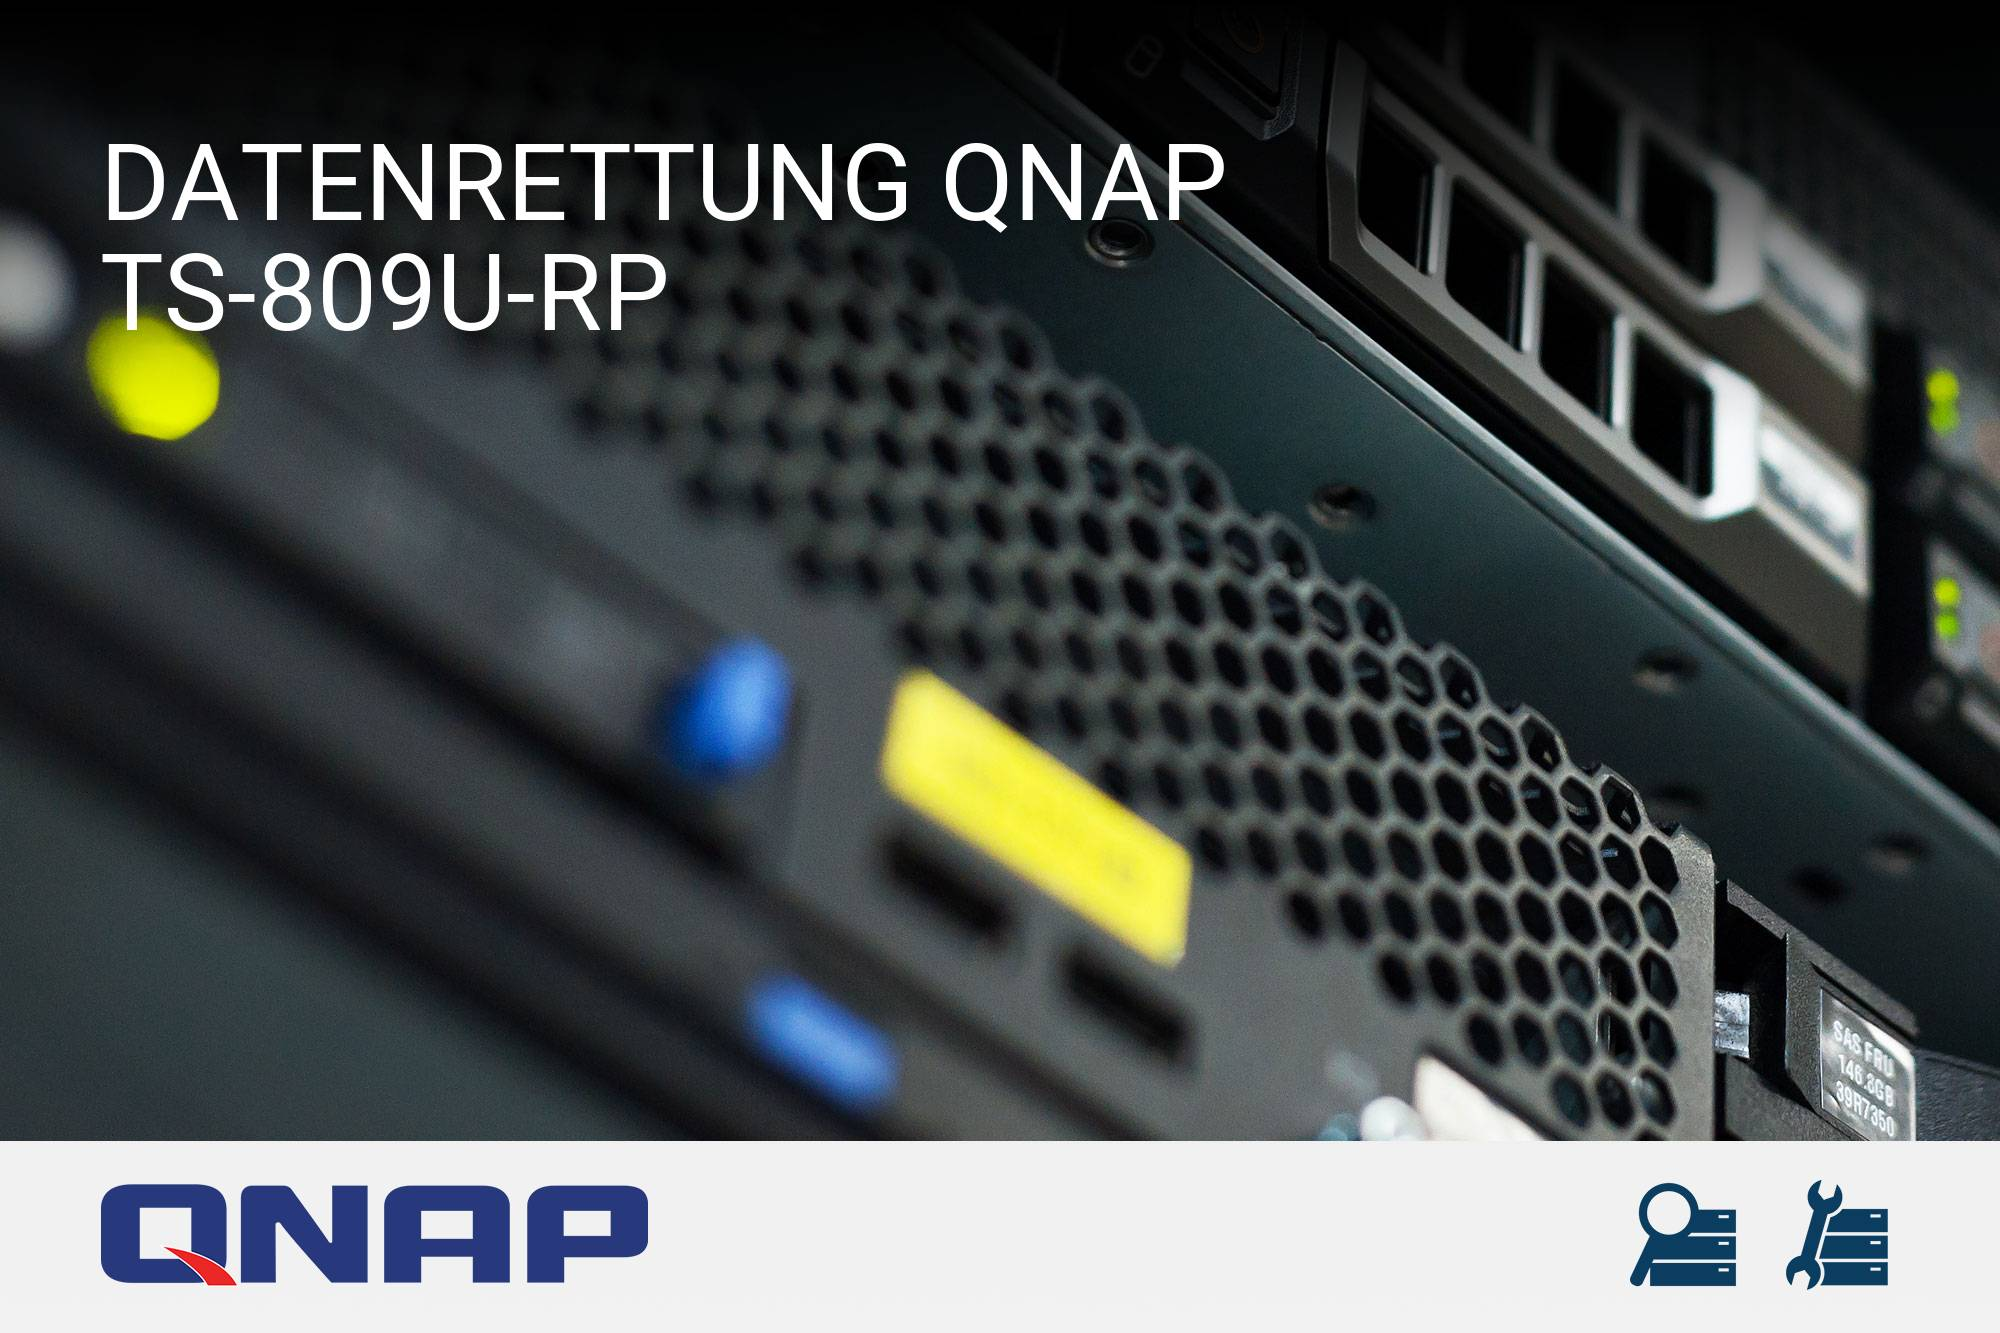 datenrettung qnap turbostation ts 809u rp server recovery. Black Bedroom Furniture Sets. Home Design Ideas